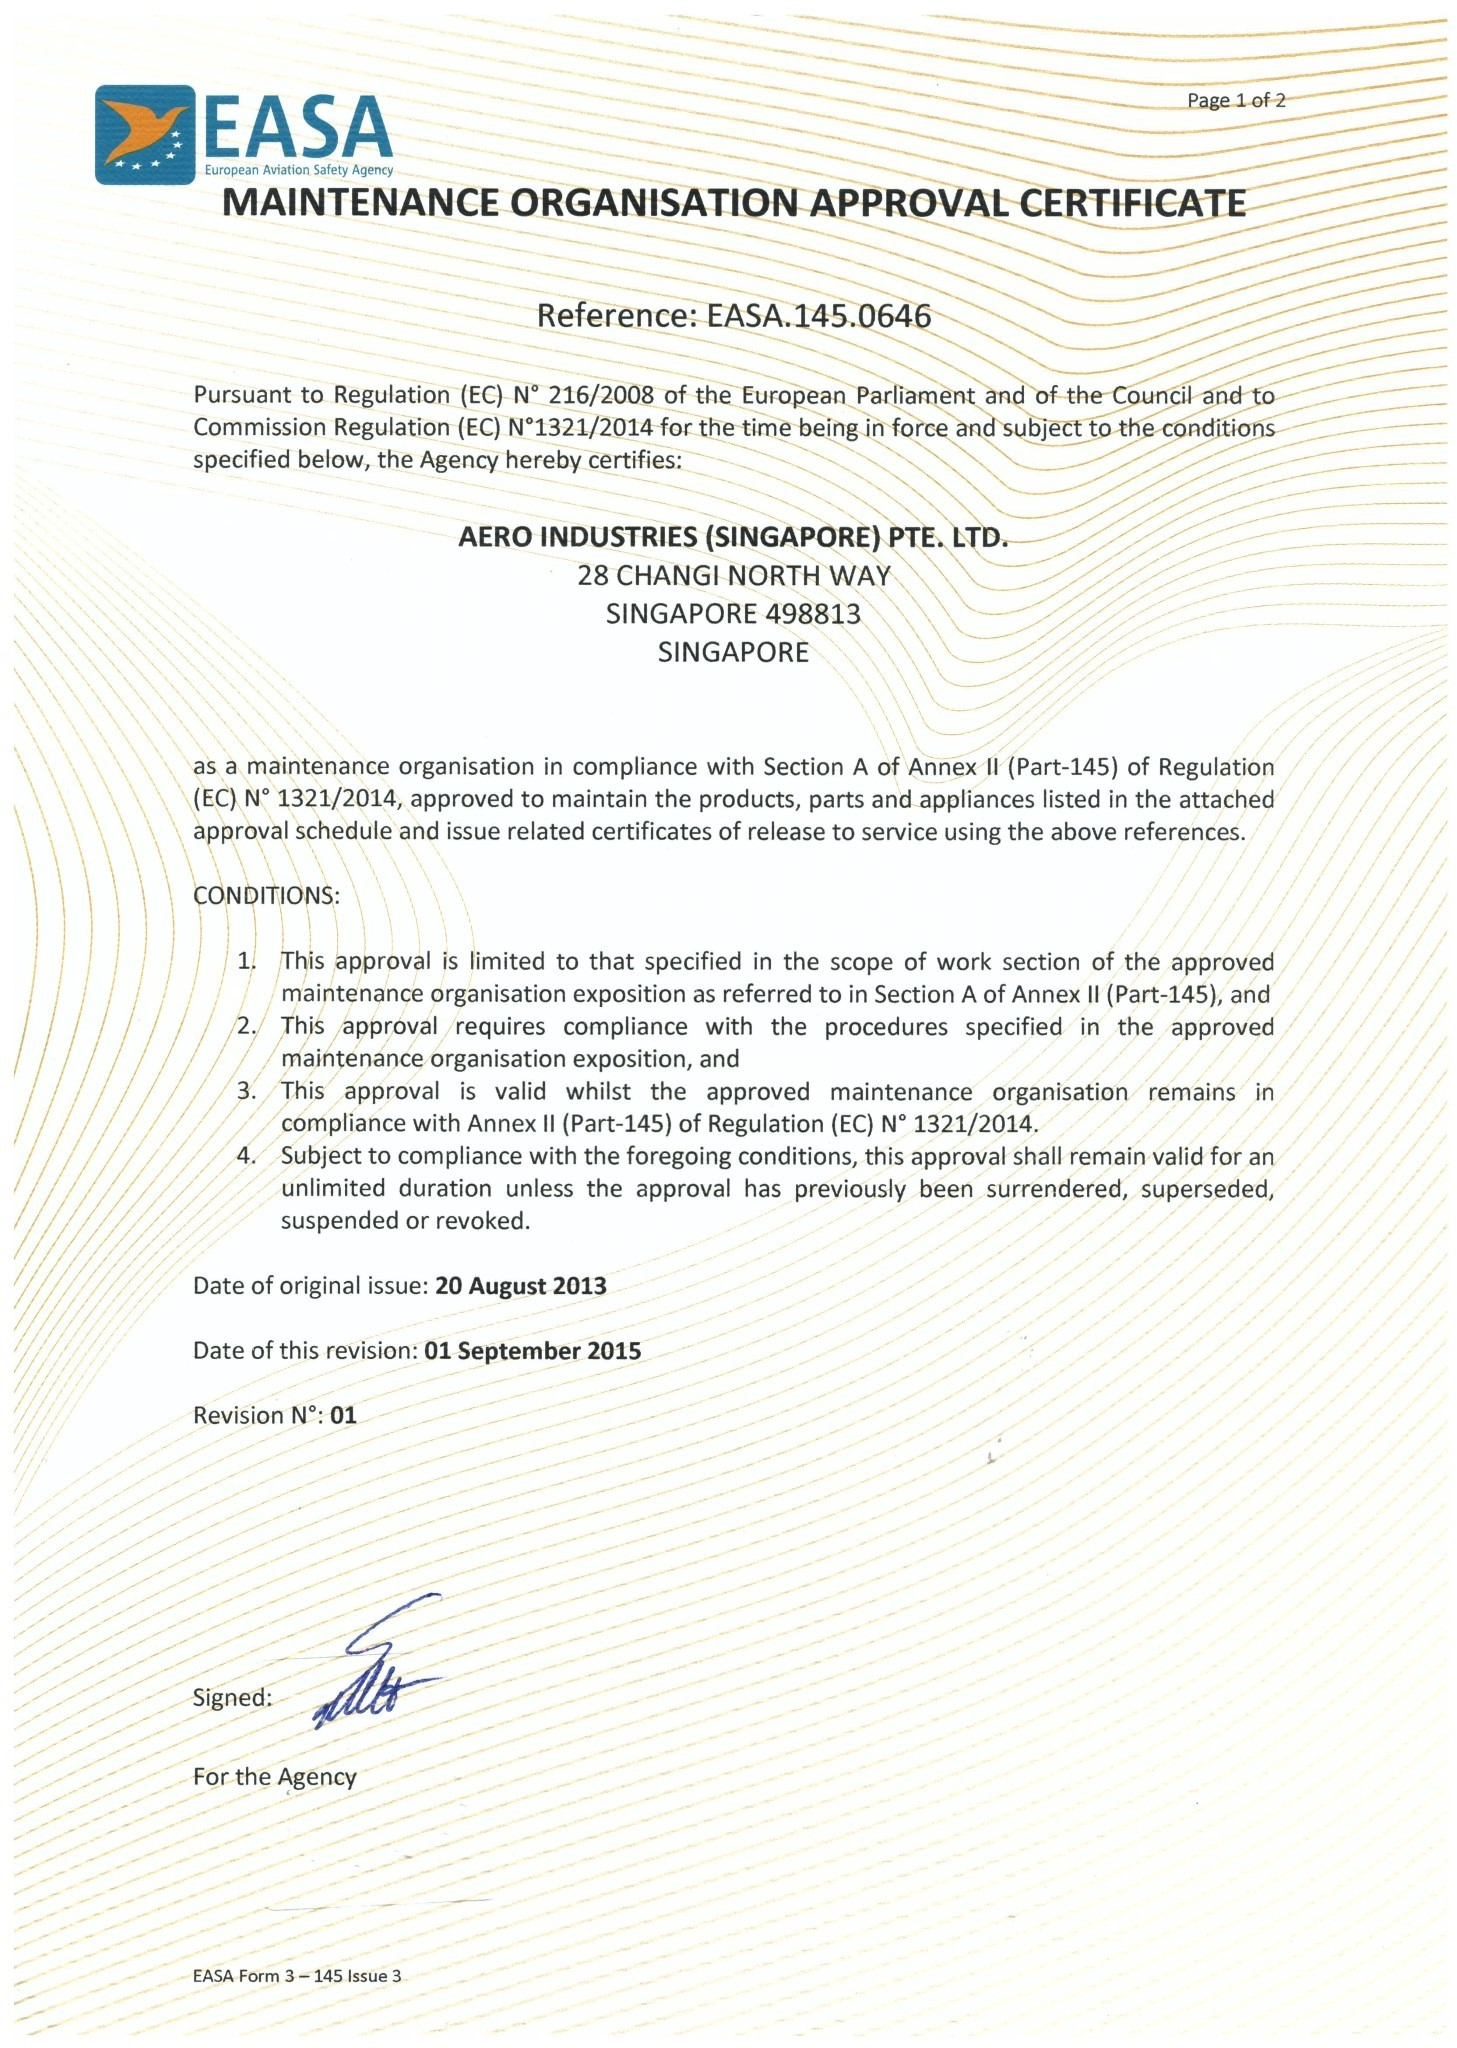 EASA 145 Approval Certificate